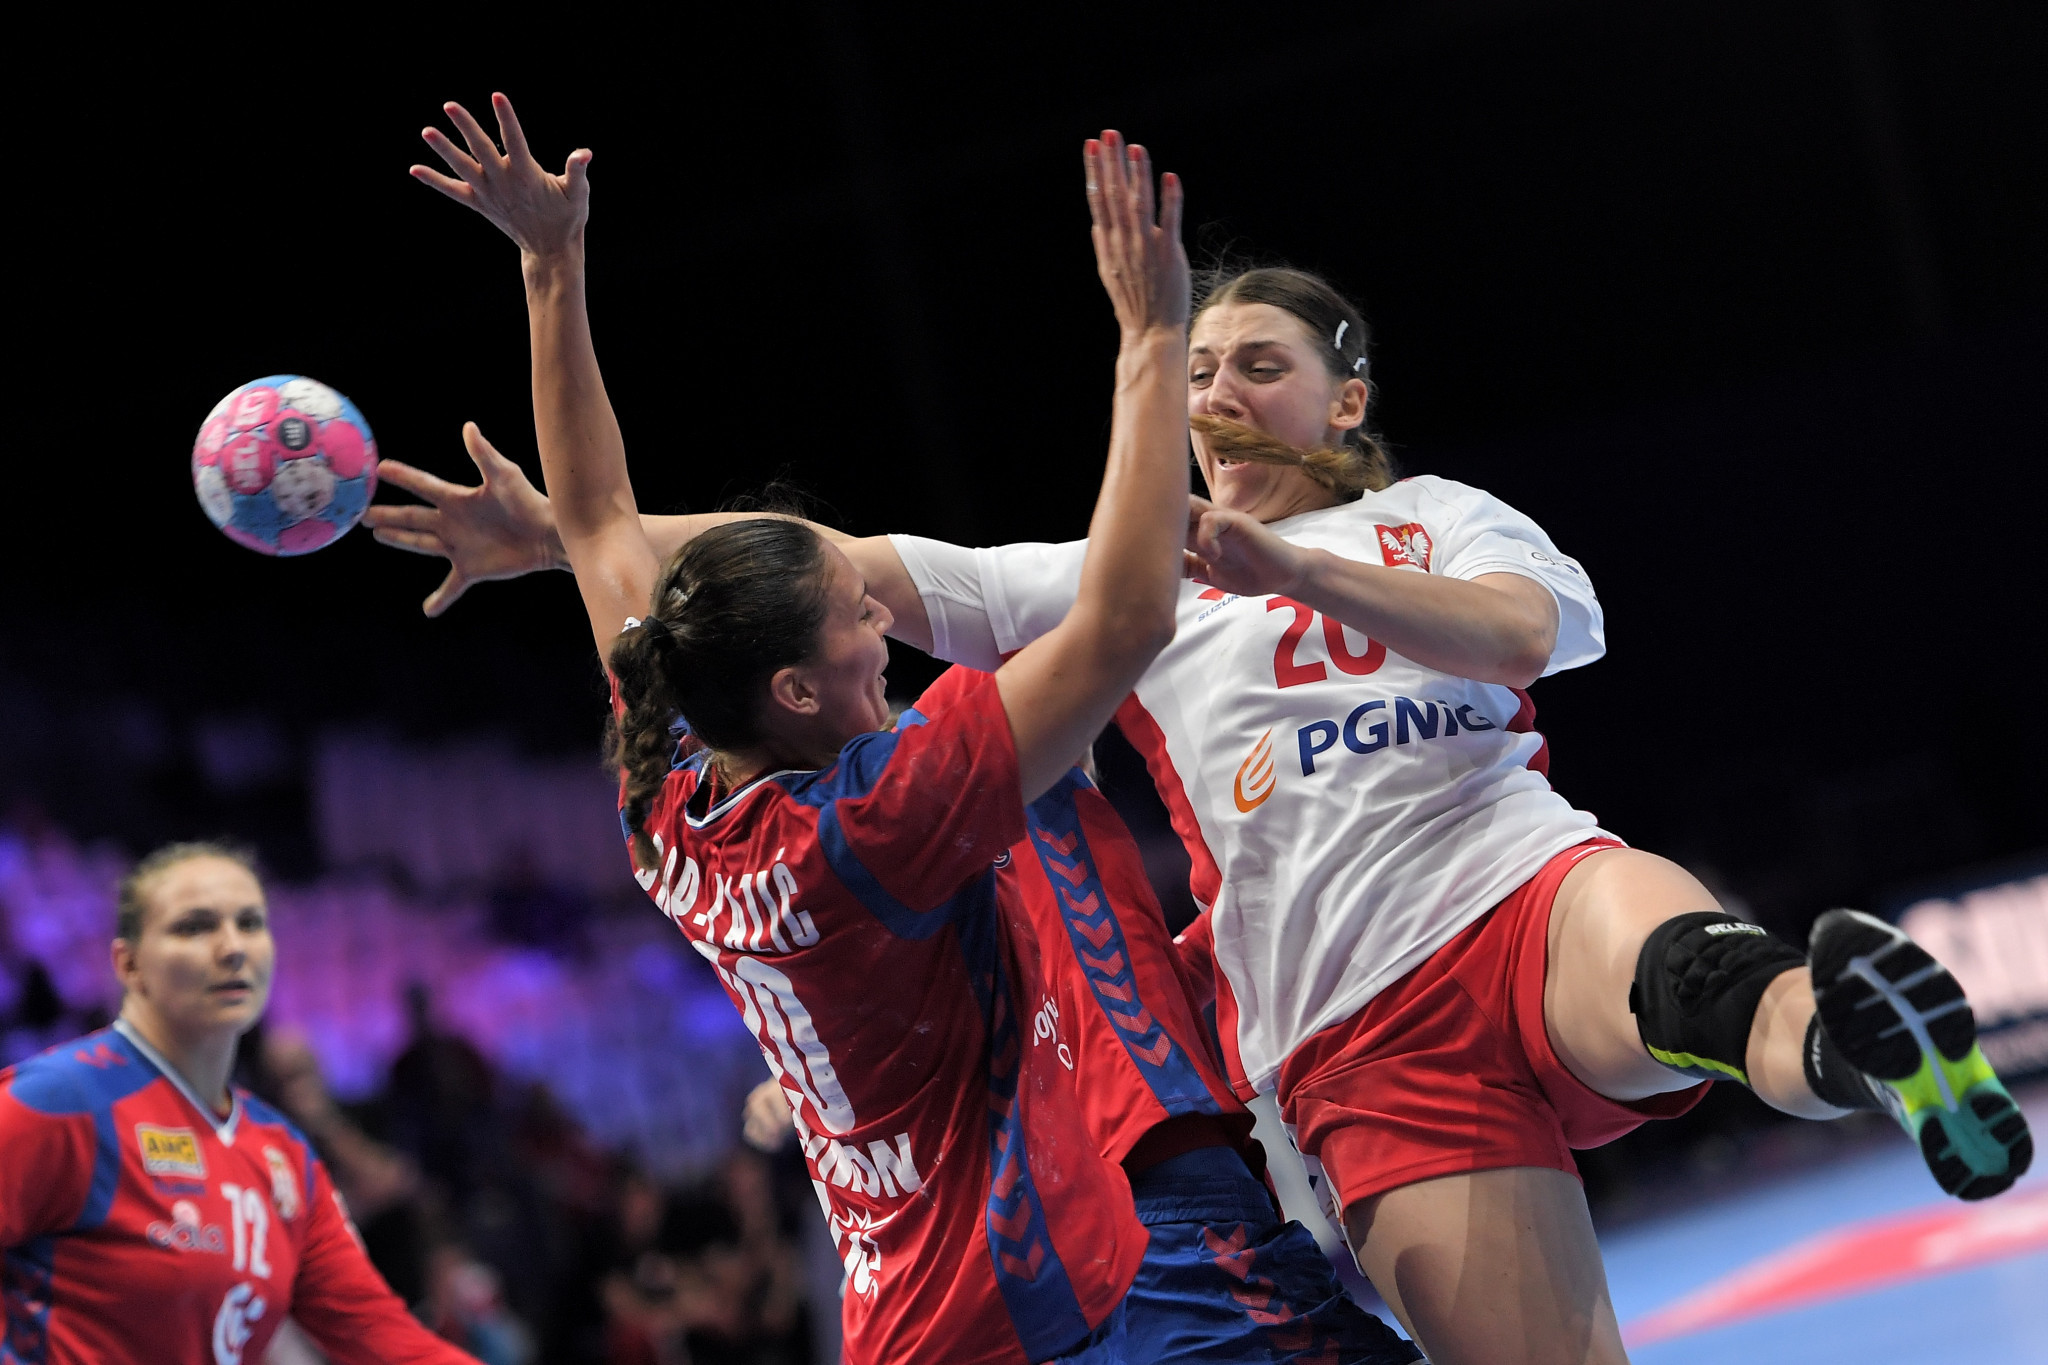 Serbia beat Poland 33-26 in their Group A game at the European Women's Handball Championships in Nantes ©Getty Images